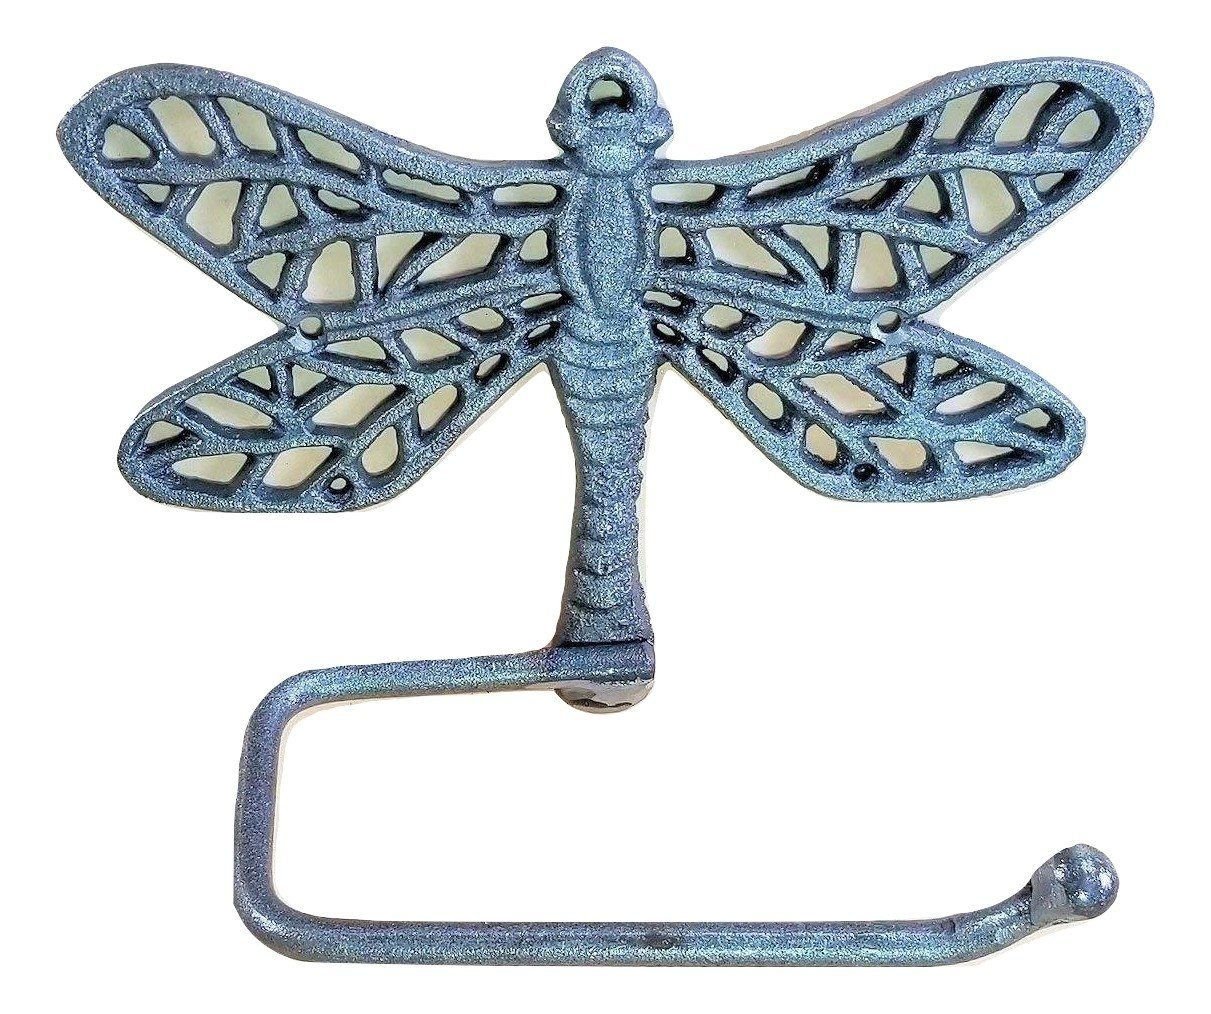 Cast Iron Dragonfly Toilet Paper Holder for the wall